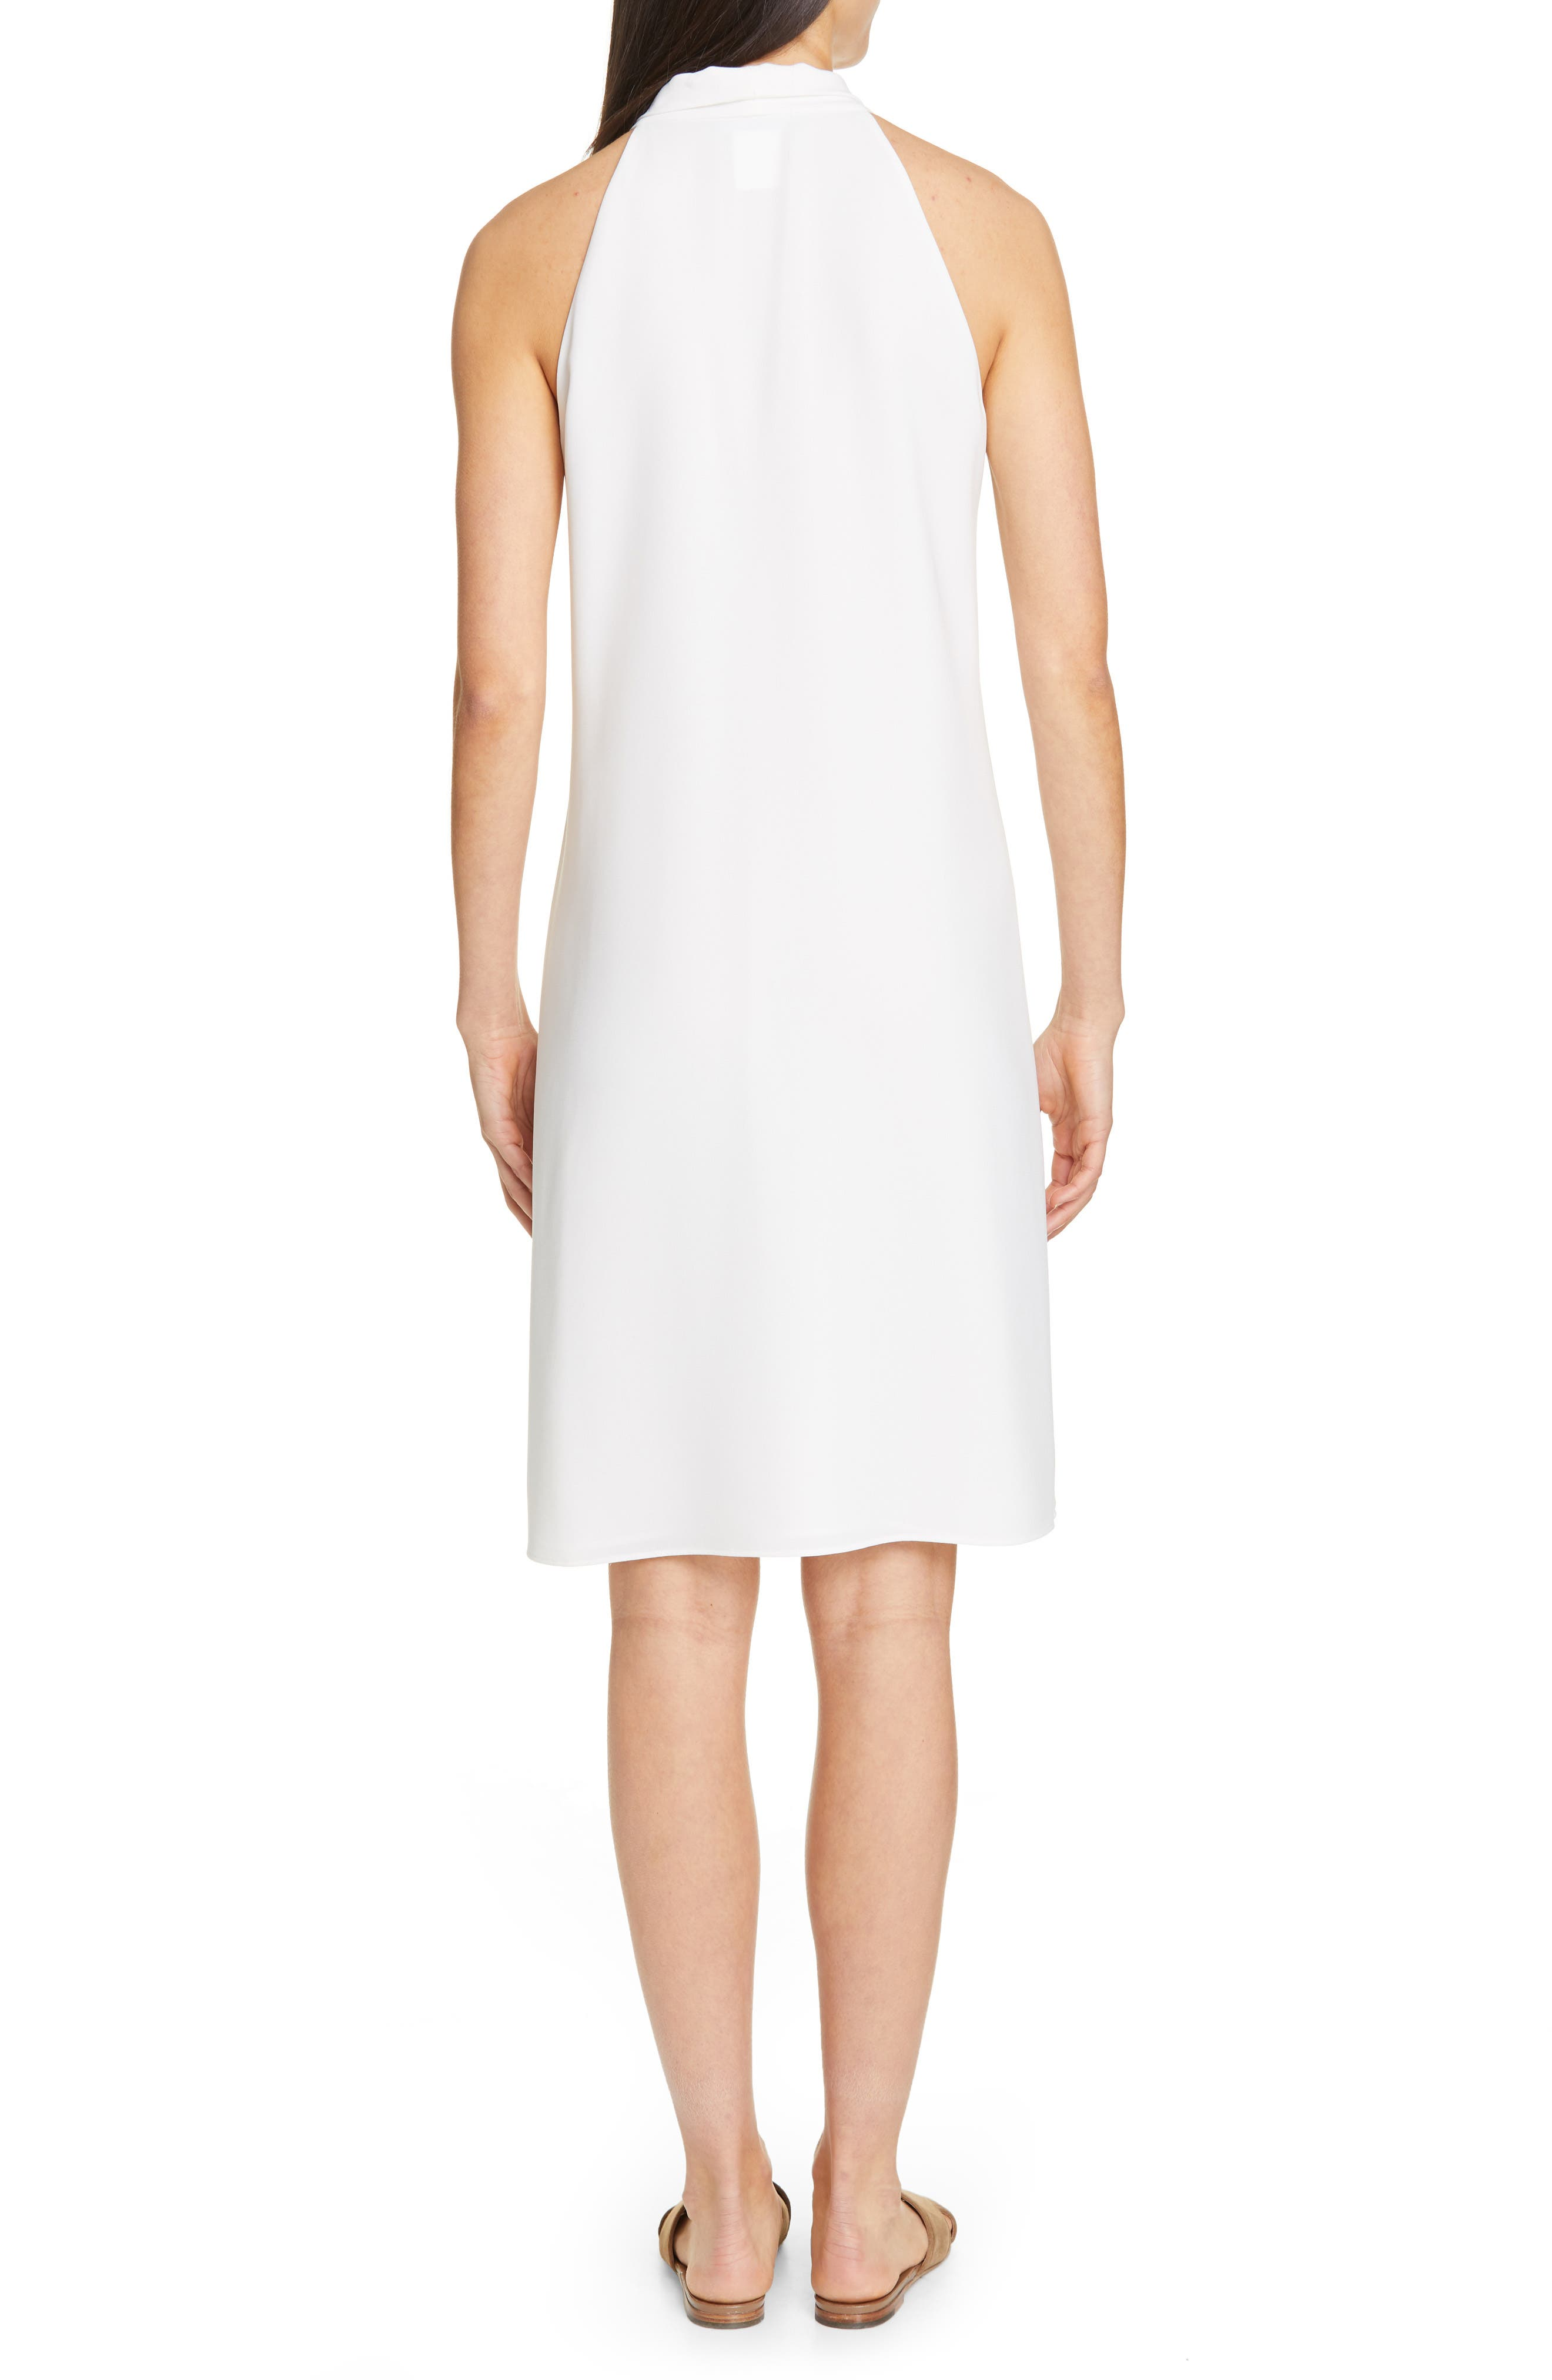 LAFAYETTE 148 NEW YORK, Amore Finesse Crepe Dress, Alternate thumbnail 2, color, CLOUD